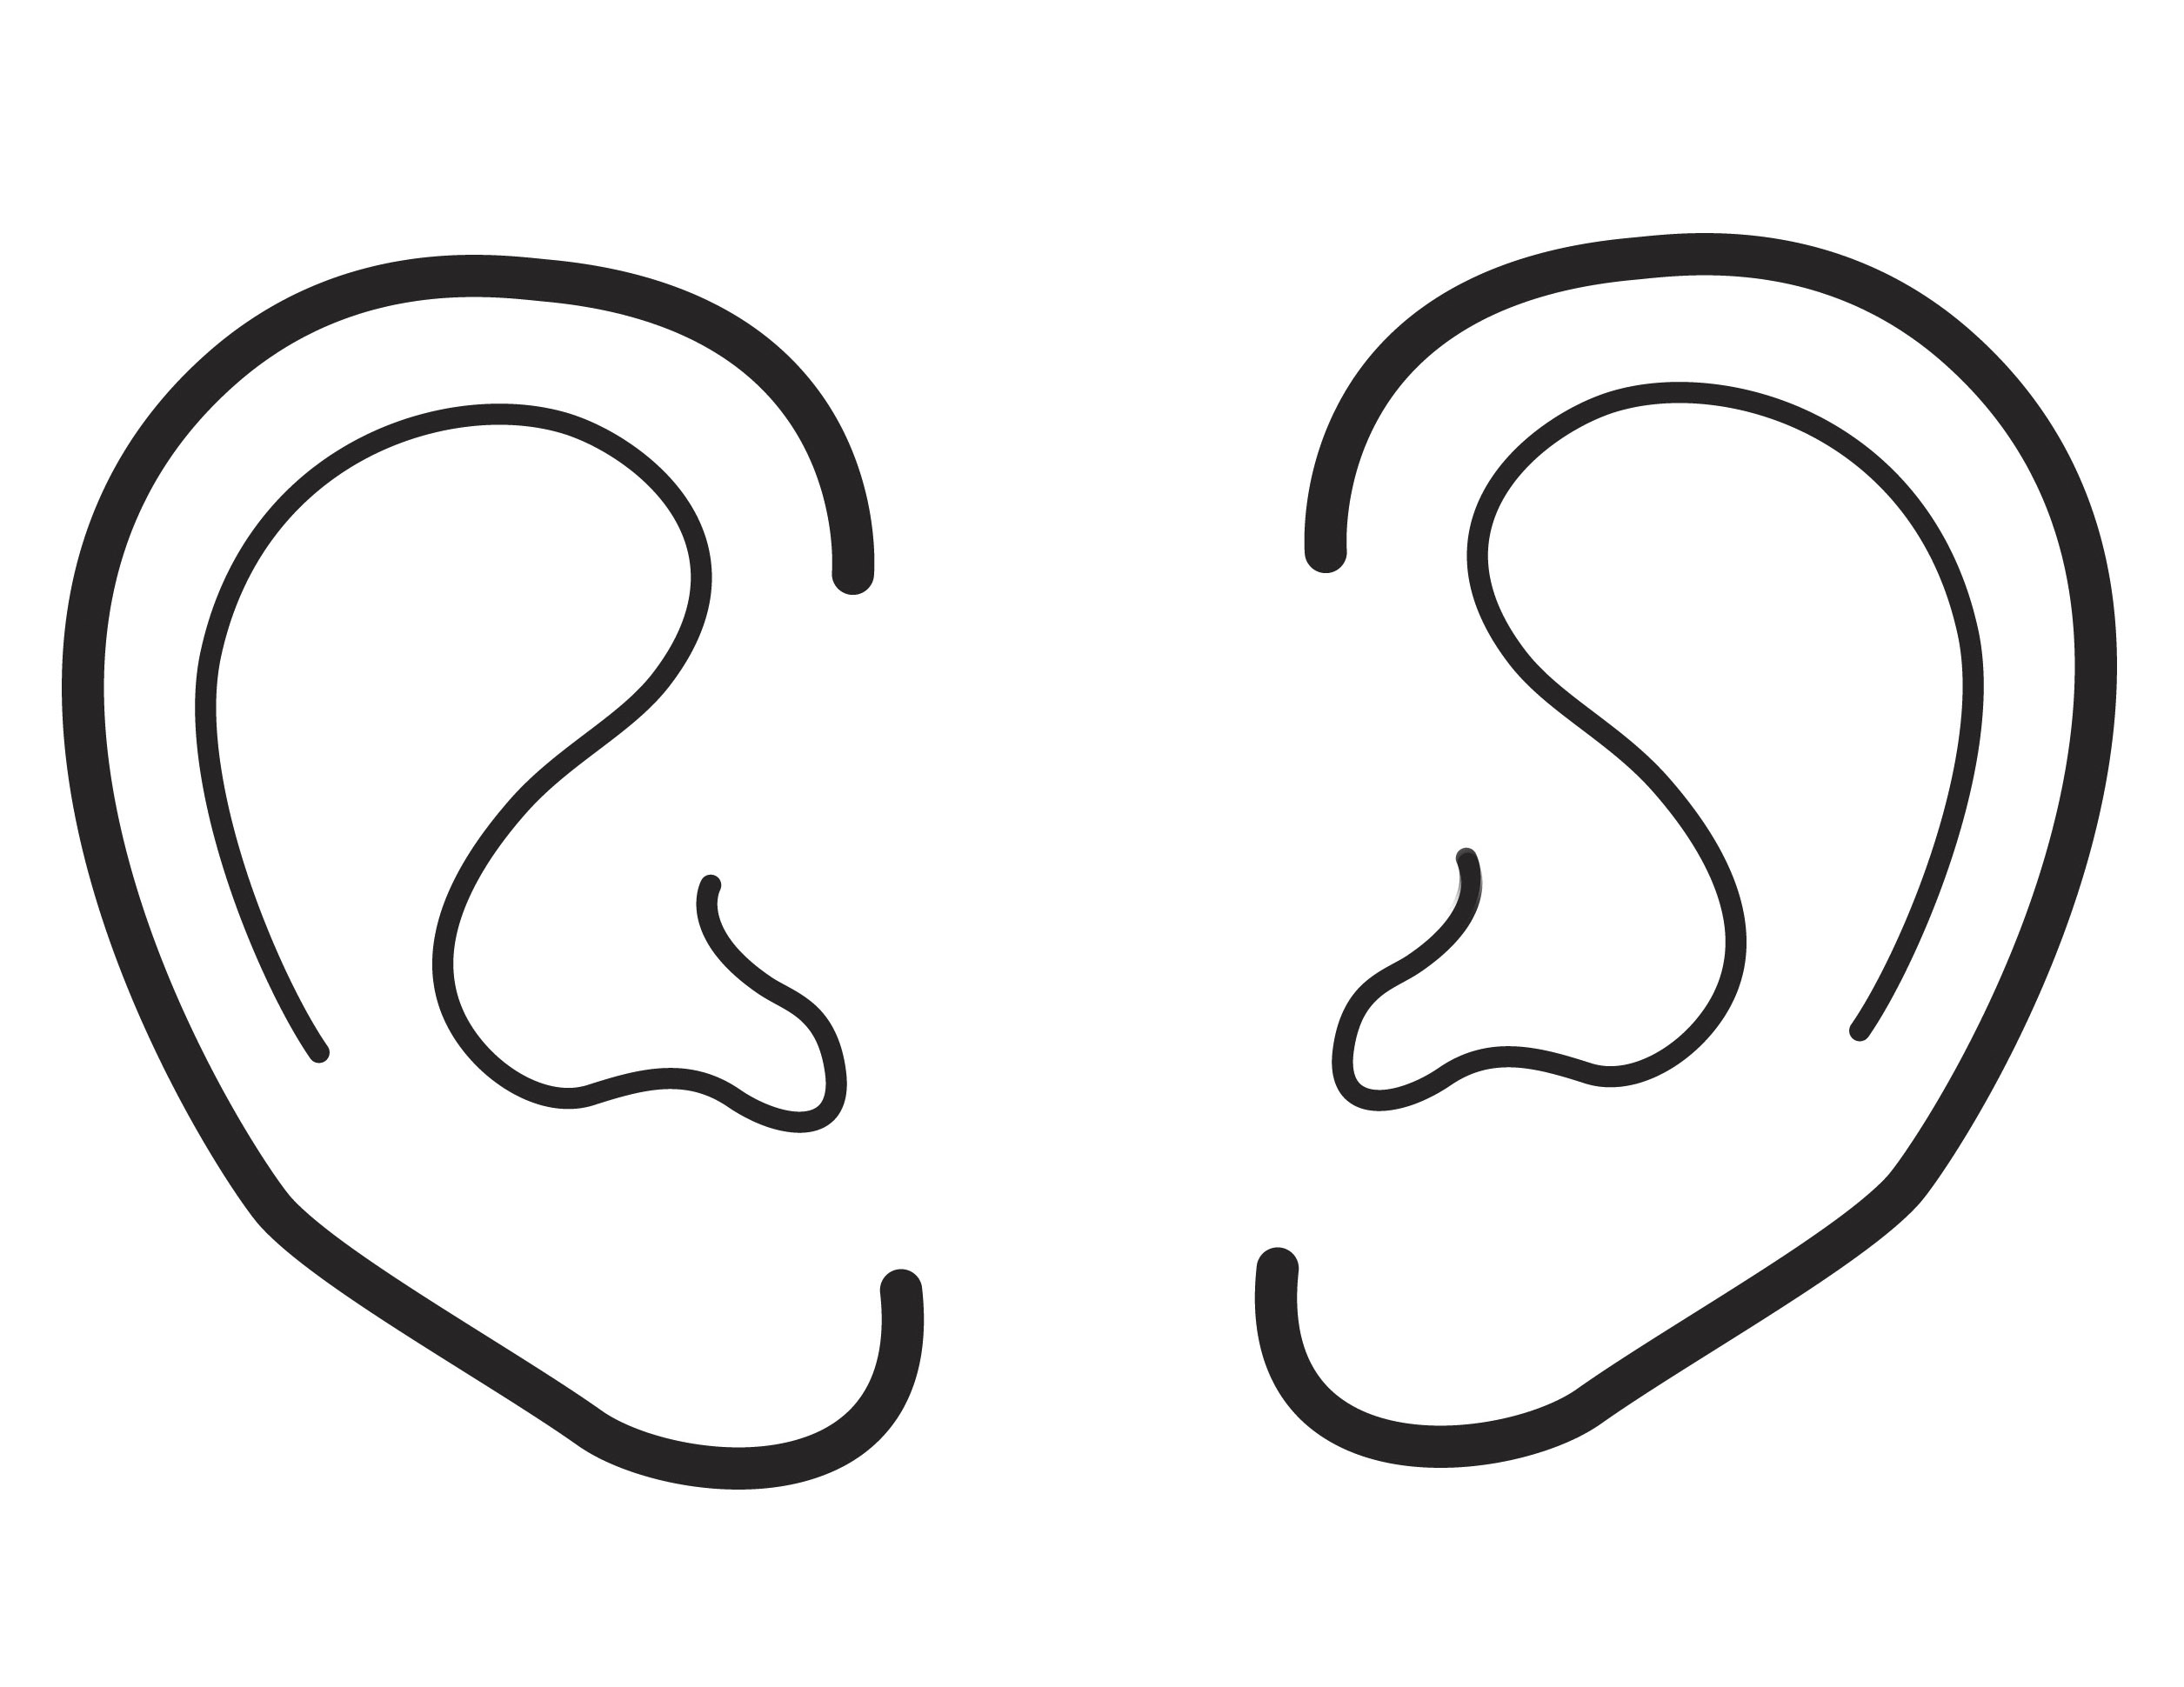 An illustration of two ears.